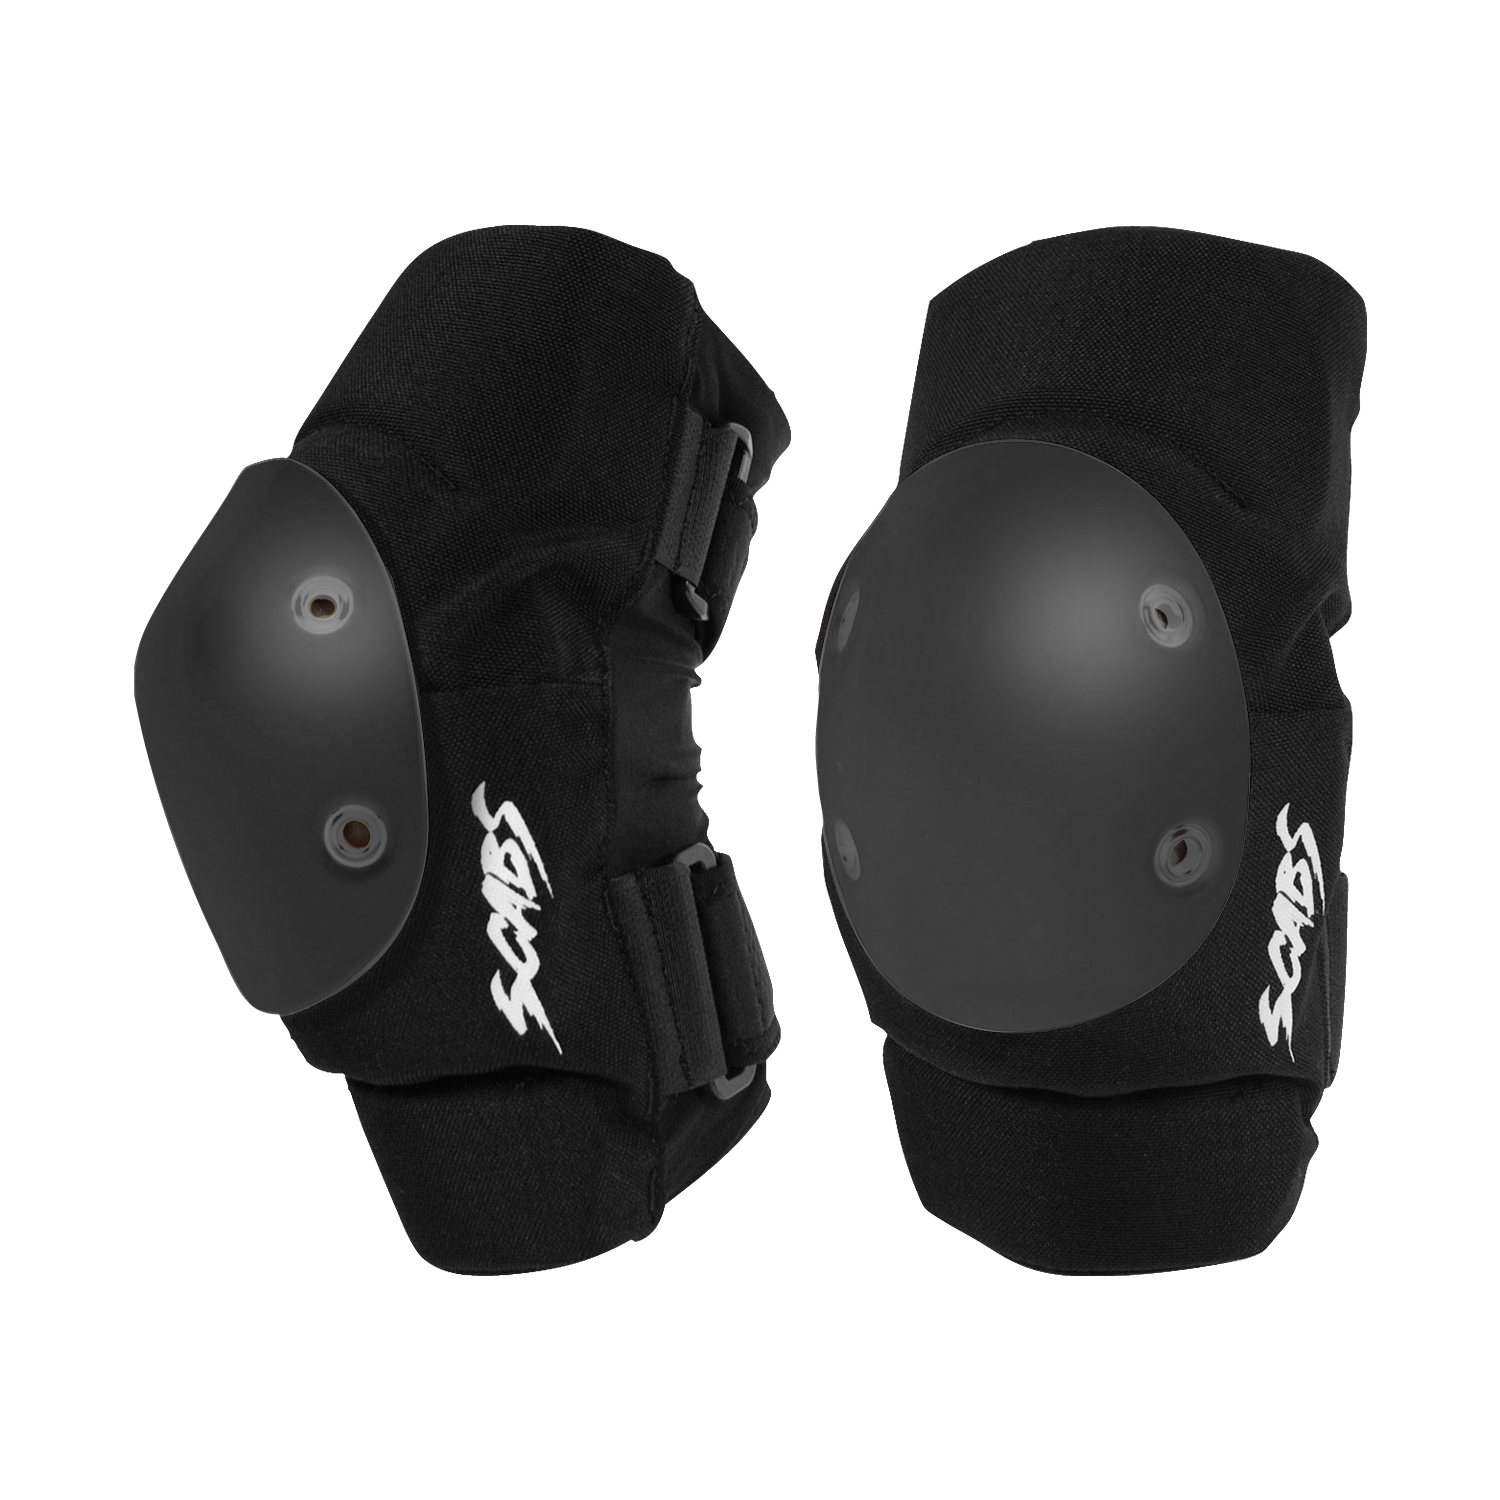 P1_ELITE_ELBOW_FRONT_SIDE_BLACK_1500x.png